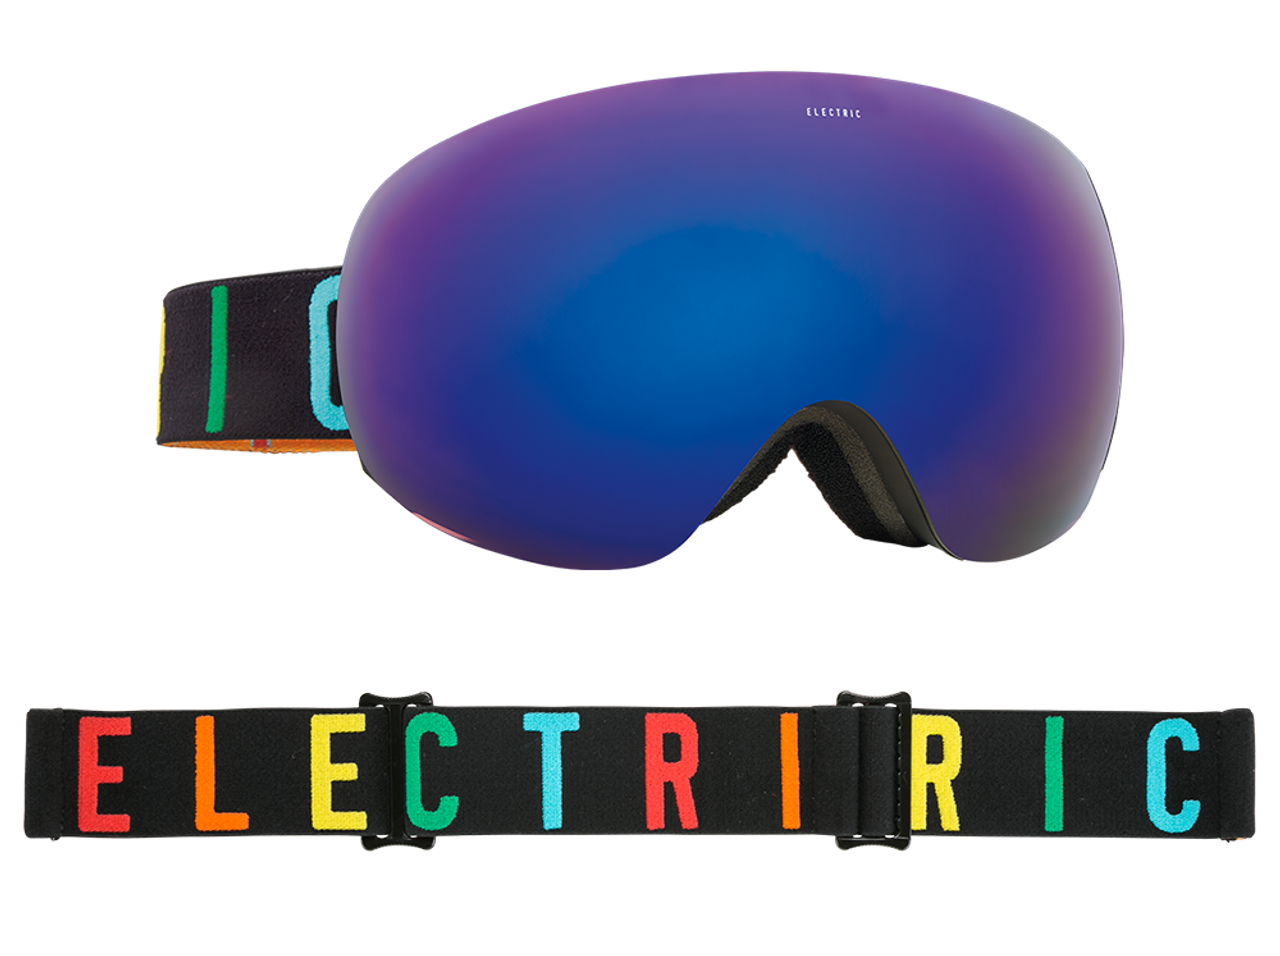 f9a4cf543f97 Electric EG3.5 Color Wordmark   Brose Blue Chrome Goggle 2018 - Gear West  Ski and Run